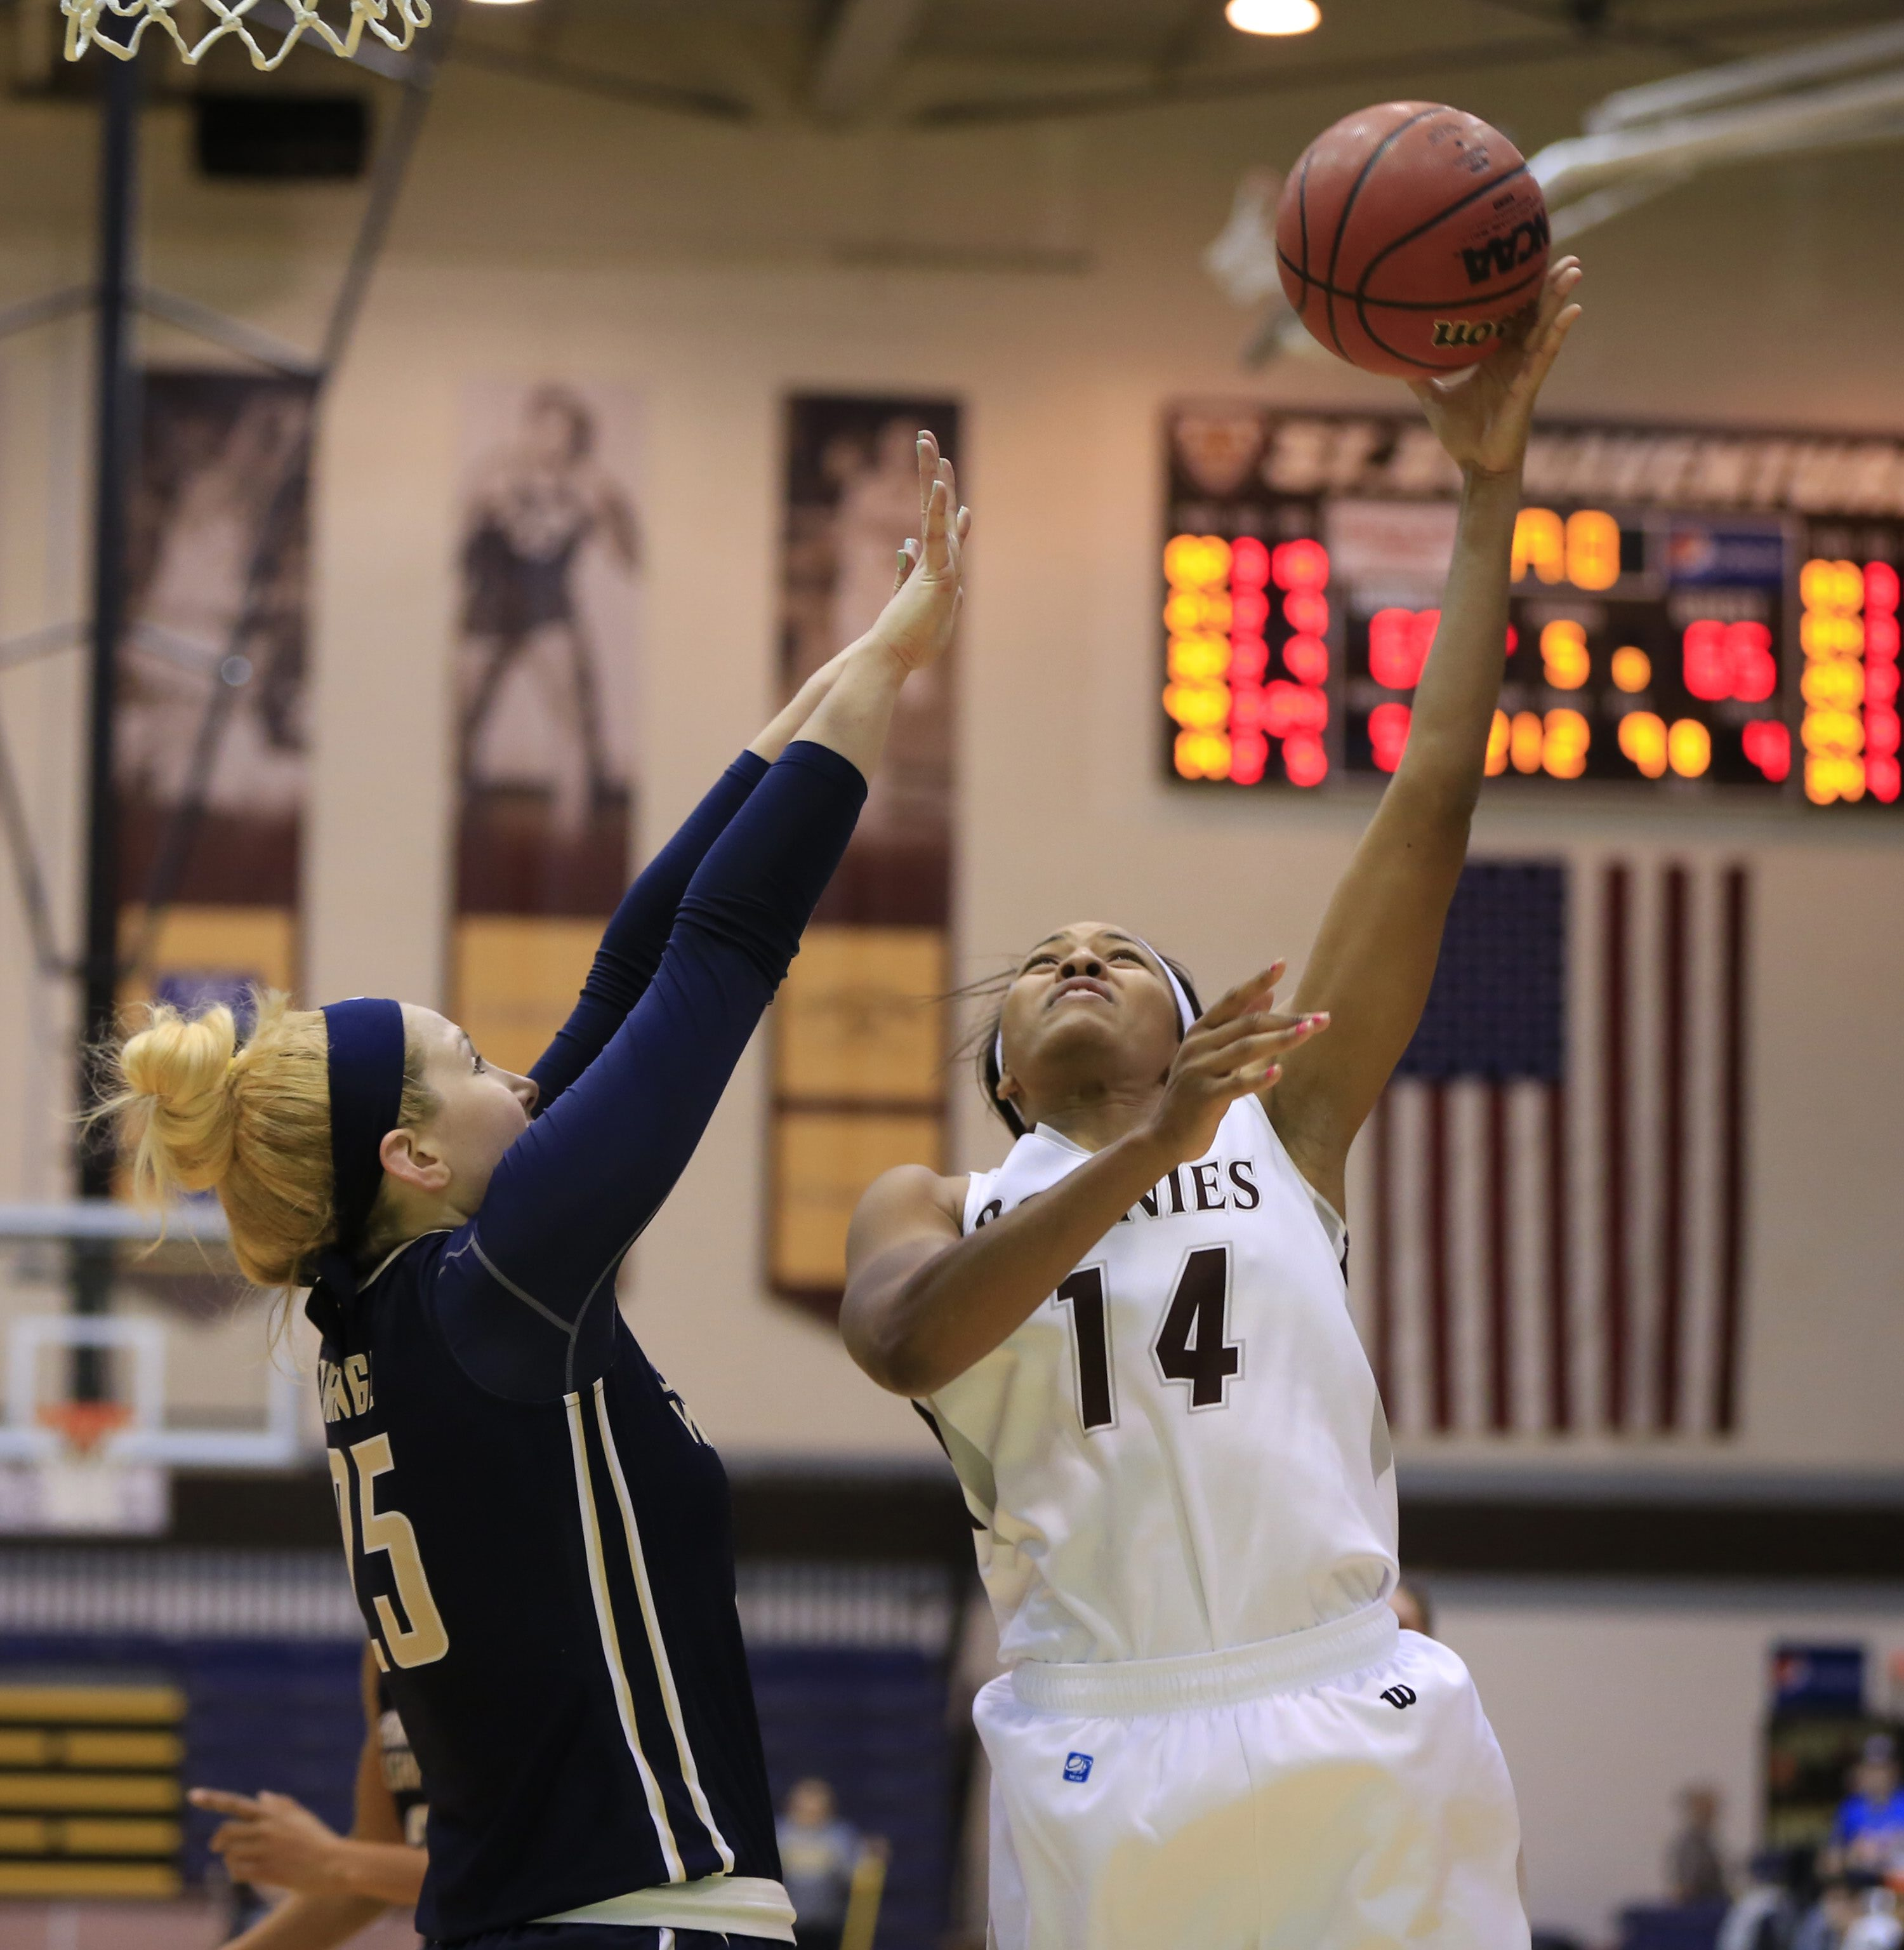 Gabby RIchmond shoots aganst George Washington during overtime action at the Reilly Center on Wednesday, Feb. 17, 2016. (Harry Scull Jr./Buffalo News)